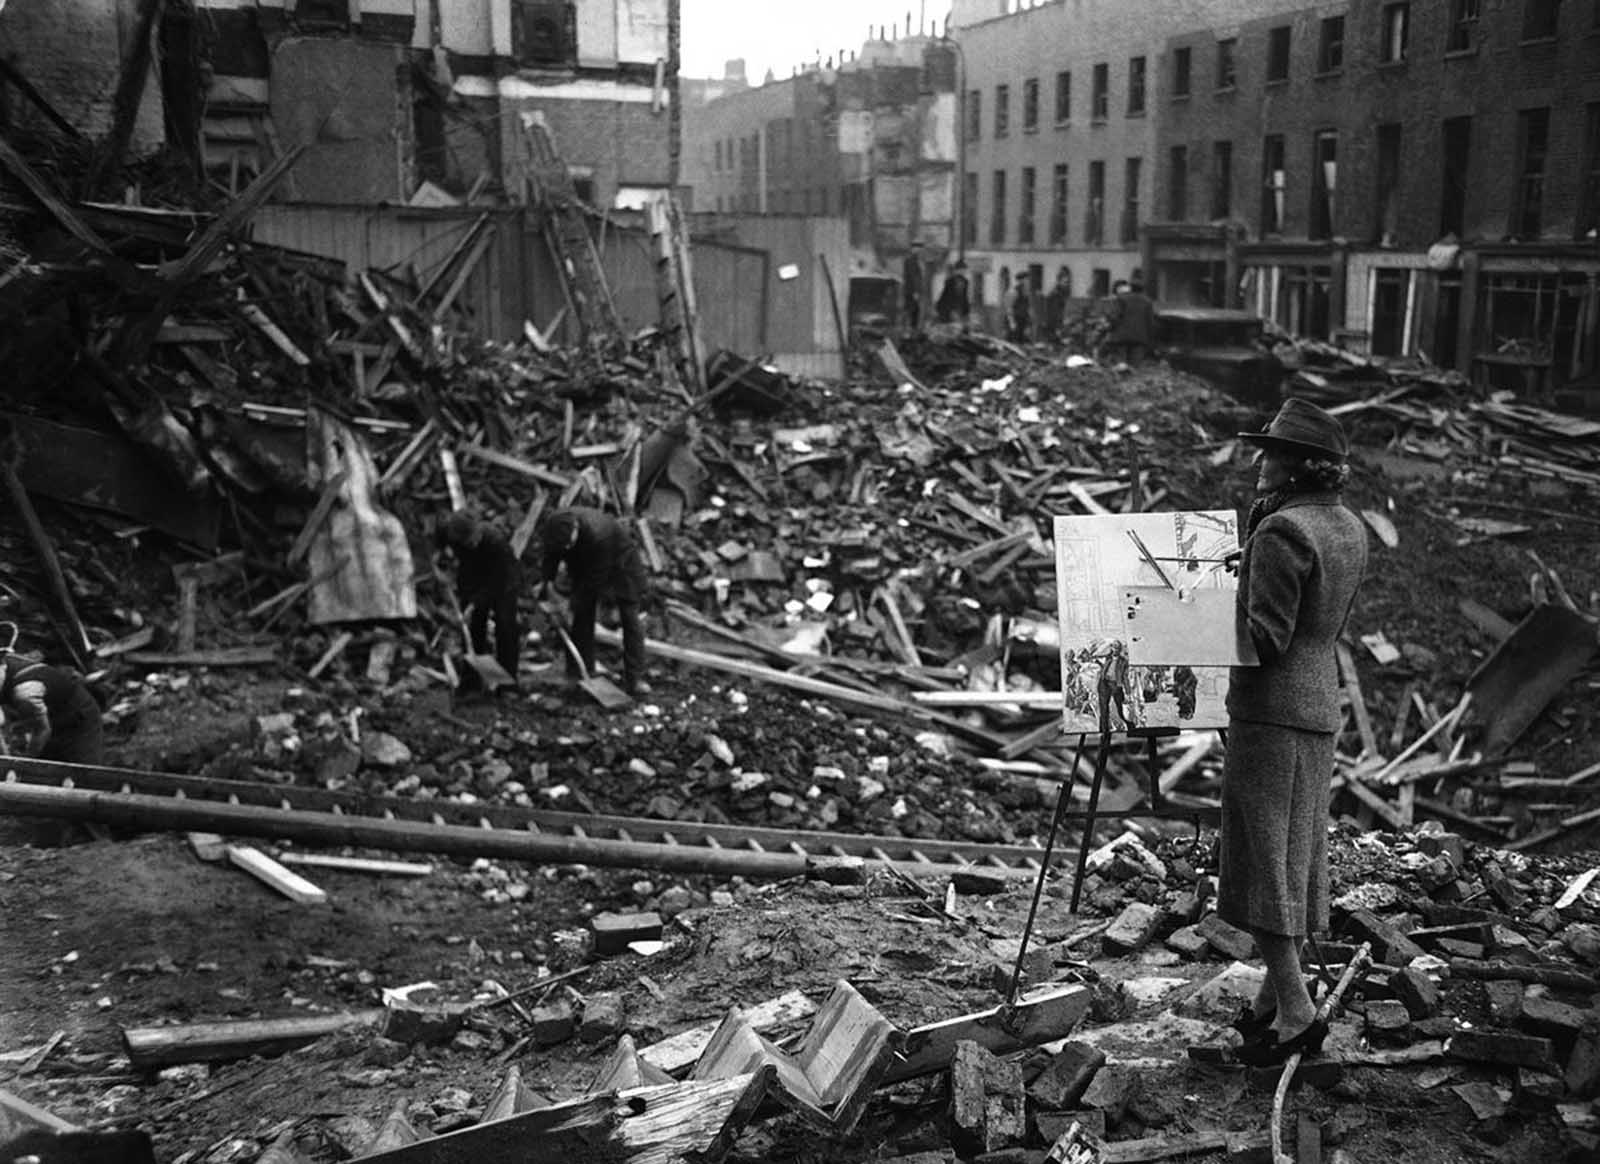 The artist Ethel Gabain, newly appointed by the Ministry of Information to make historical war pictures, at work among bombed ruins in the East End of London on November 28, 1940.